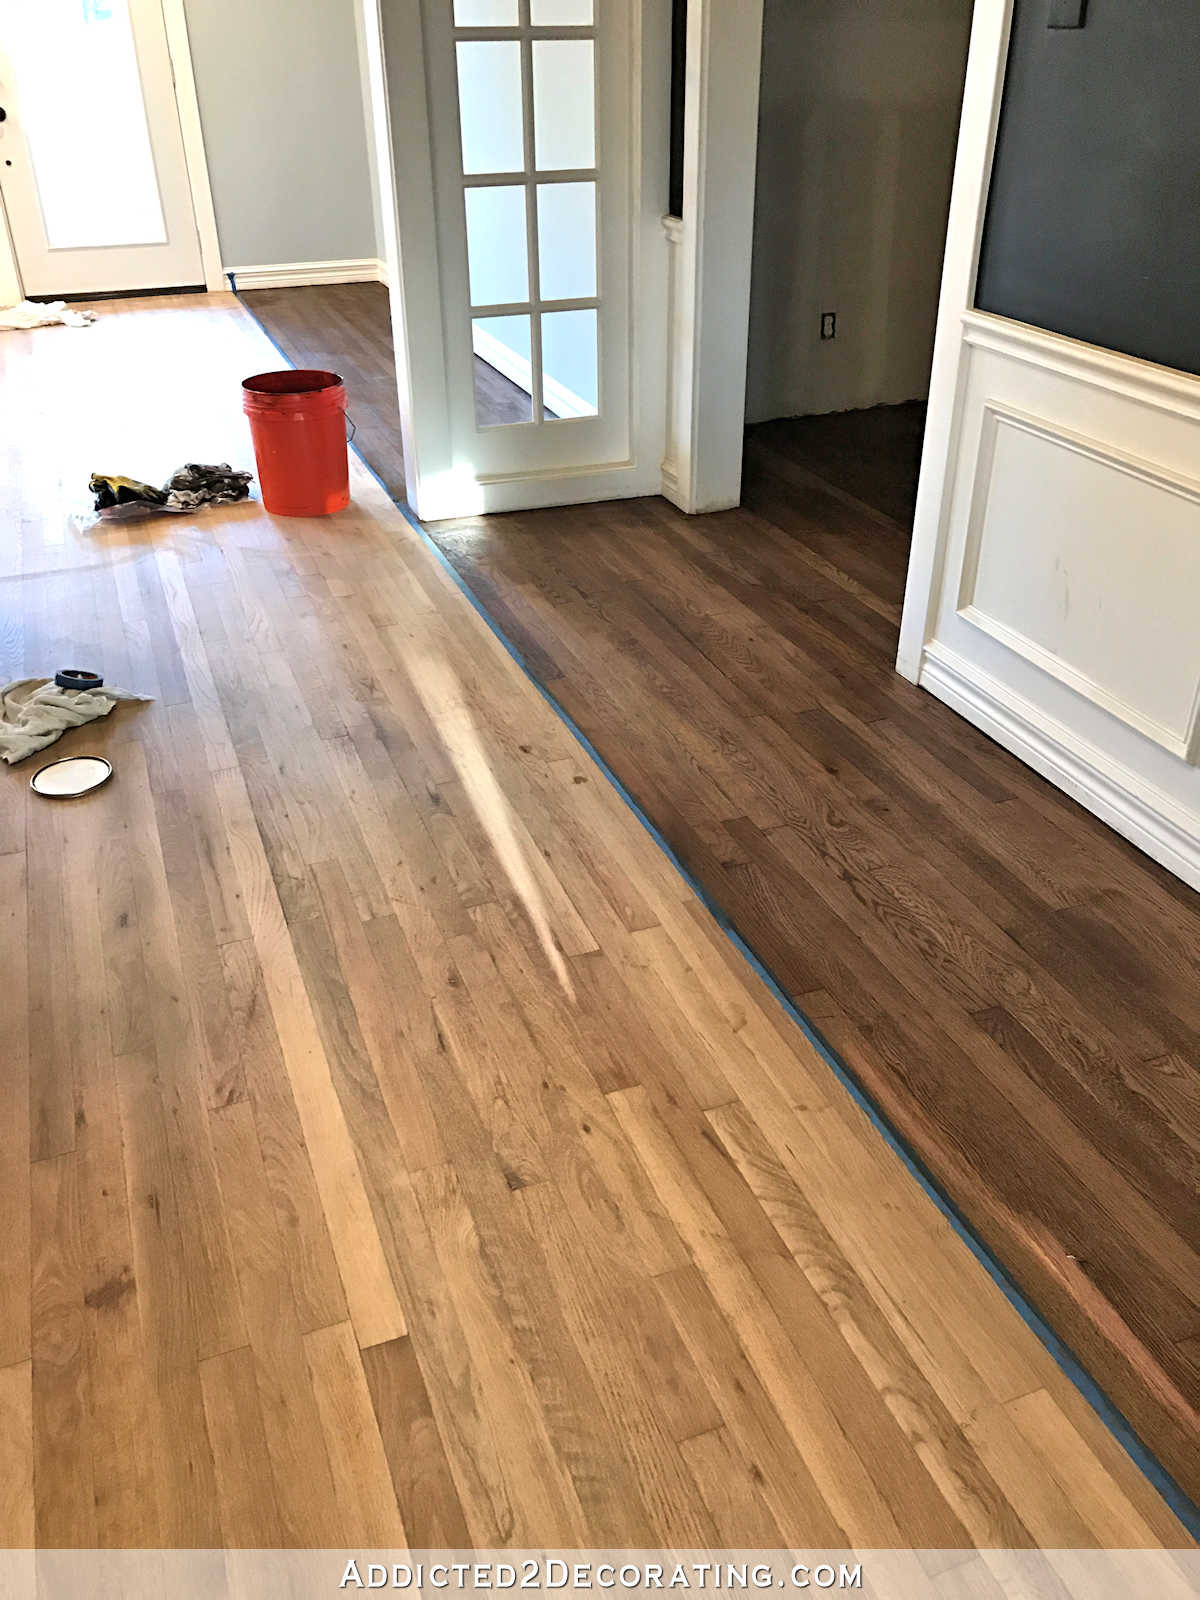 hardwood flooring floor and decor of adventures in staining my red oak hardwood floors products process within staining red oak hardwood floors 6 stain on partial floor in entryway and music room